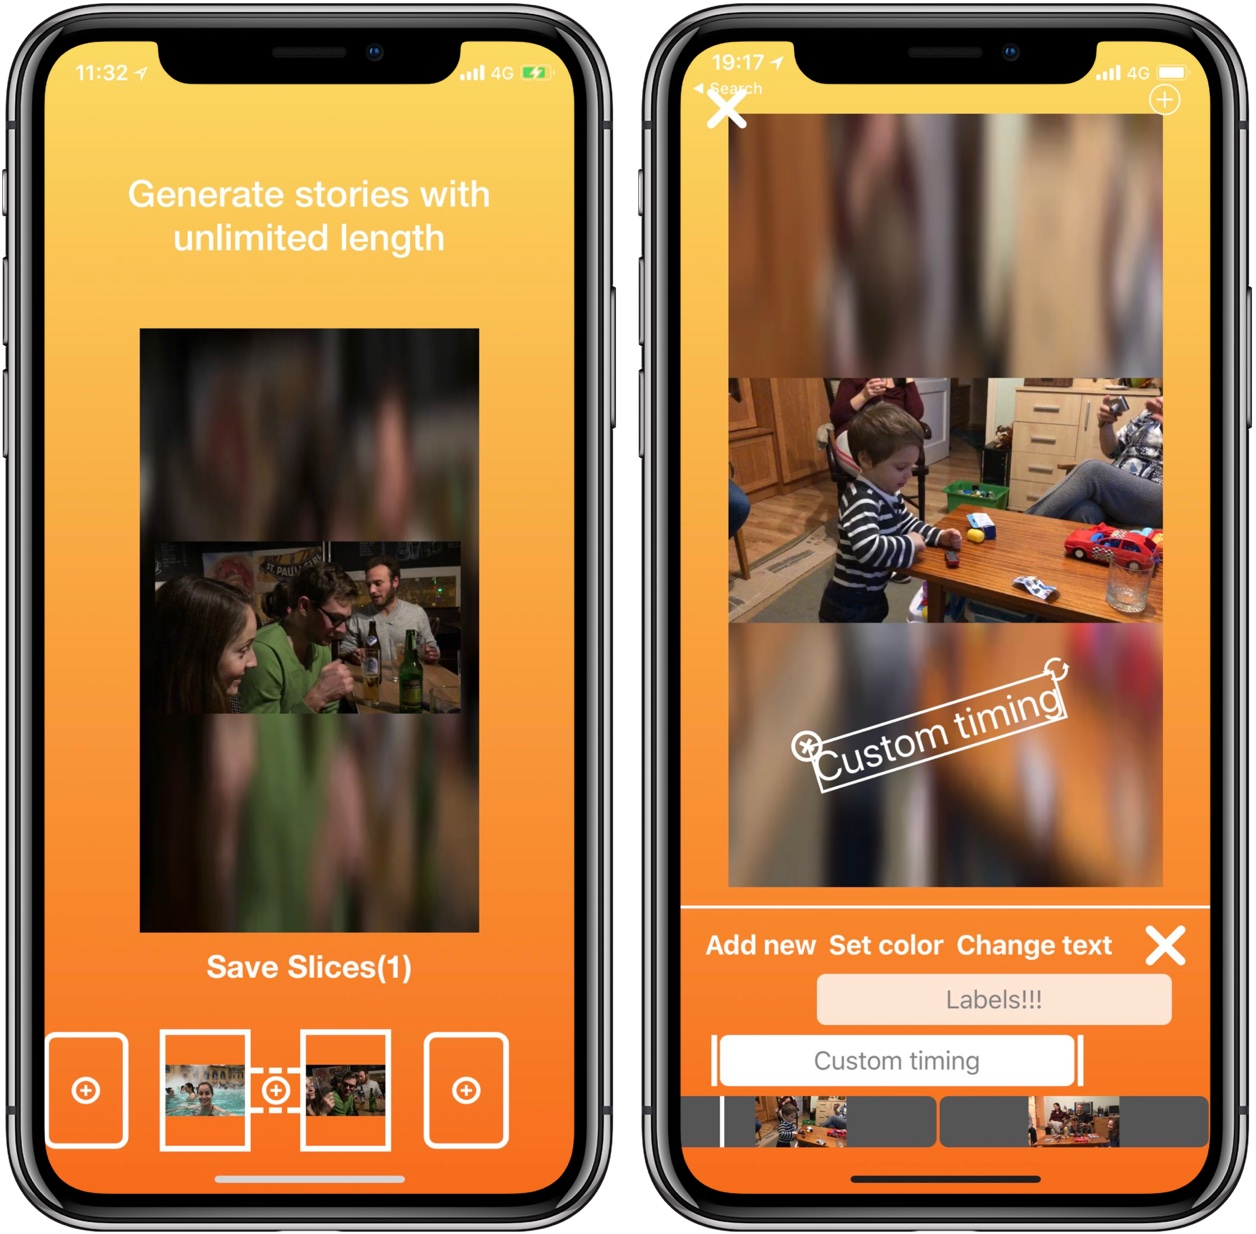 Infinite Stories app lets you create Instagram Stories with